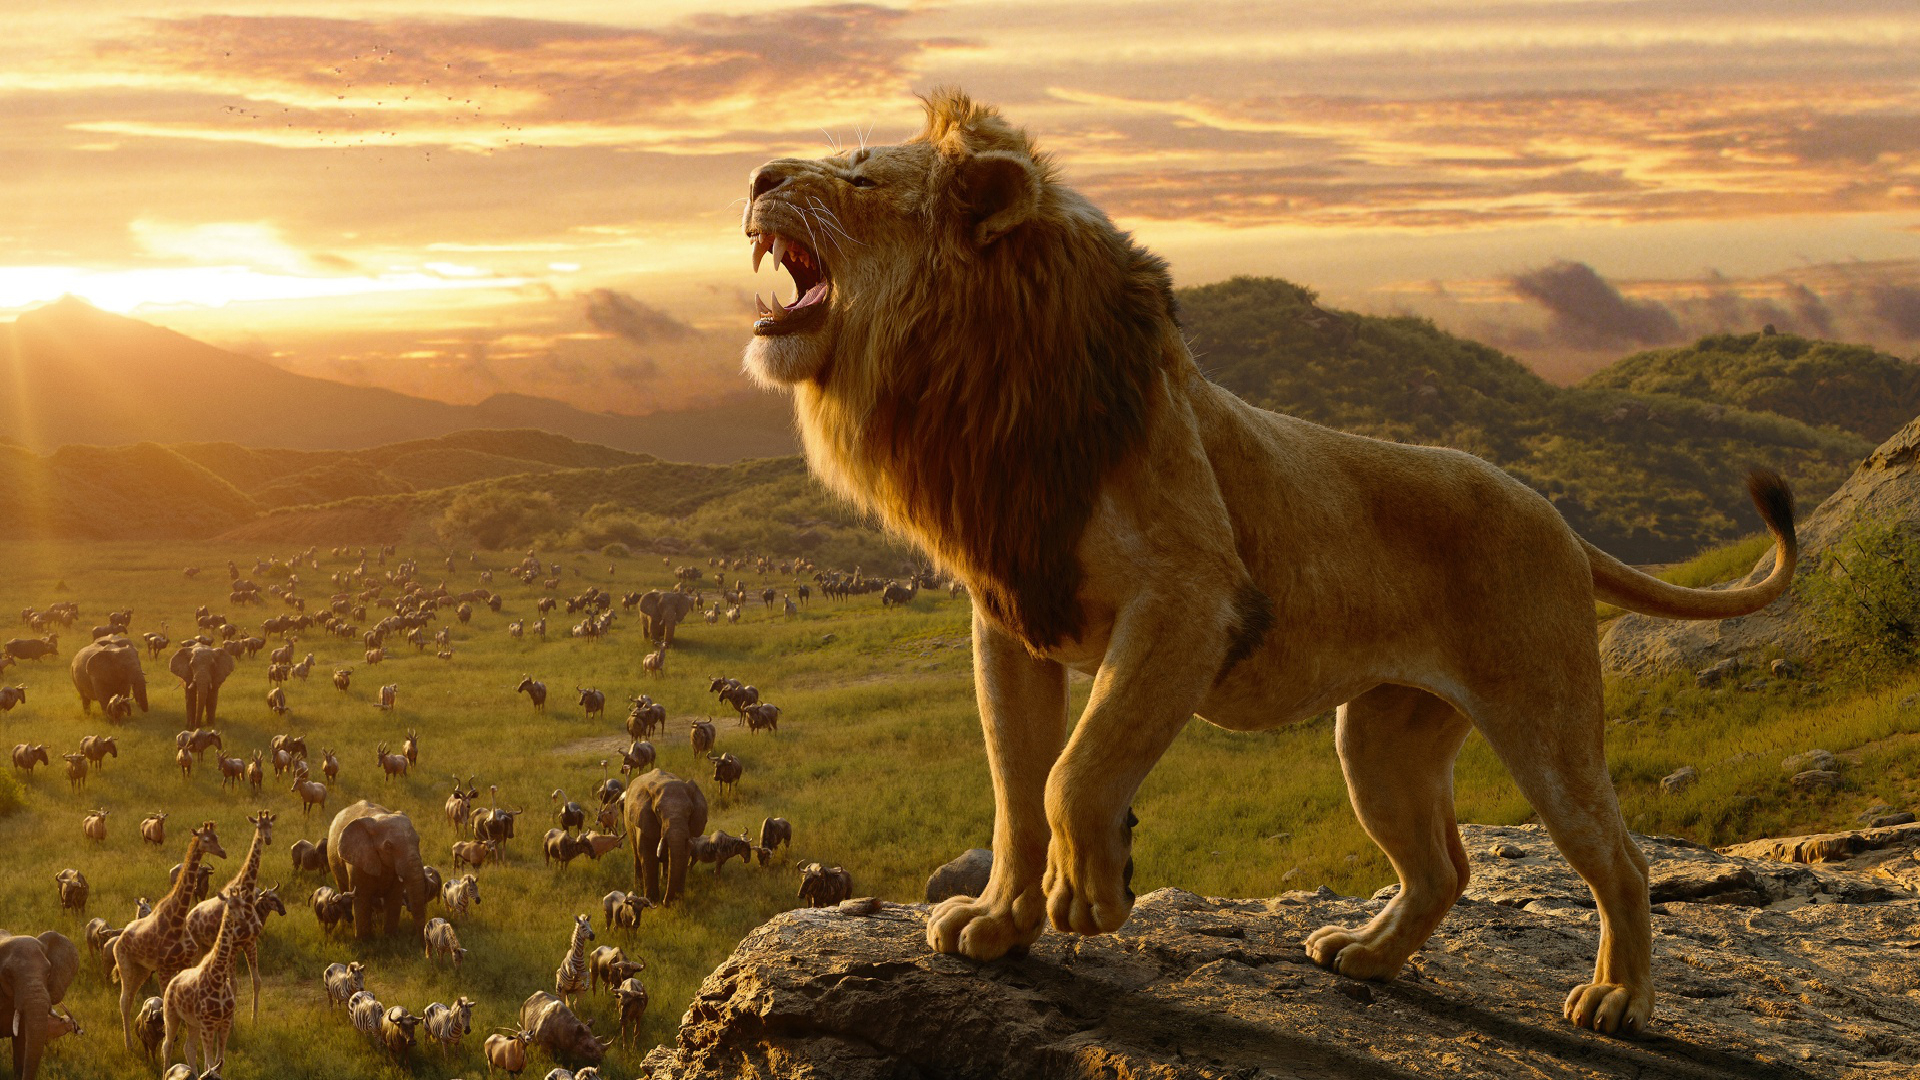 picture,king of beasts,big businessman,animals,baron,power,king,movie,top executive,wildlife,movies,world beater,lion,2019,business leader,the,film,picture show